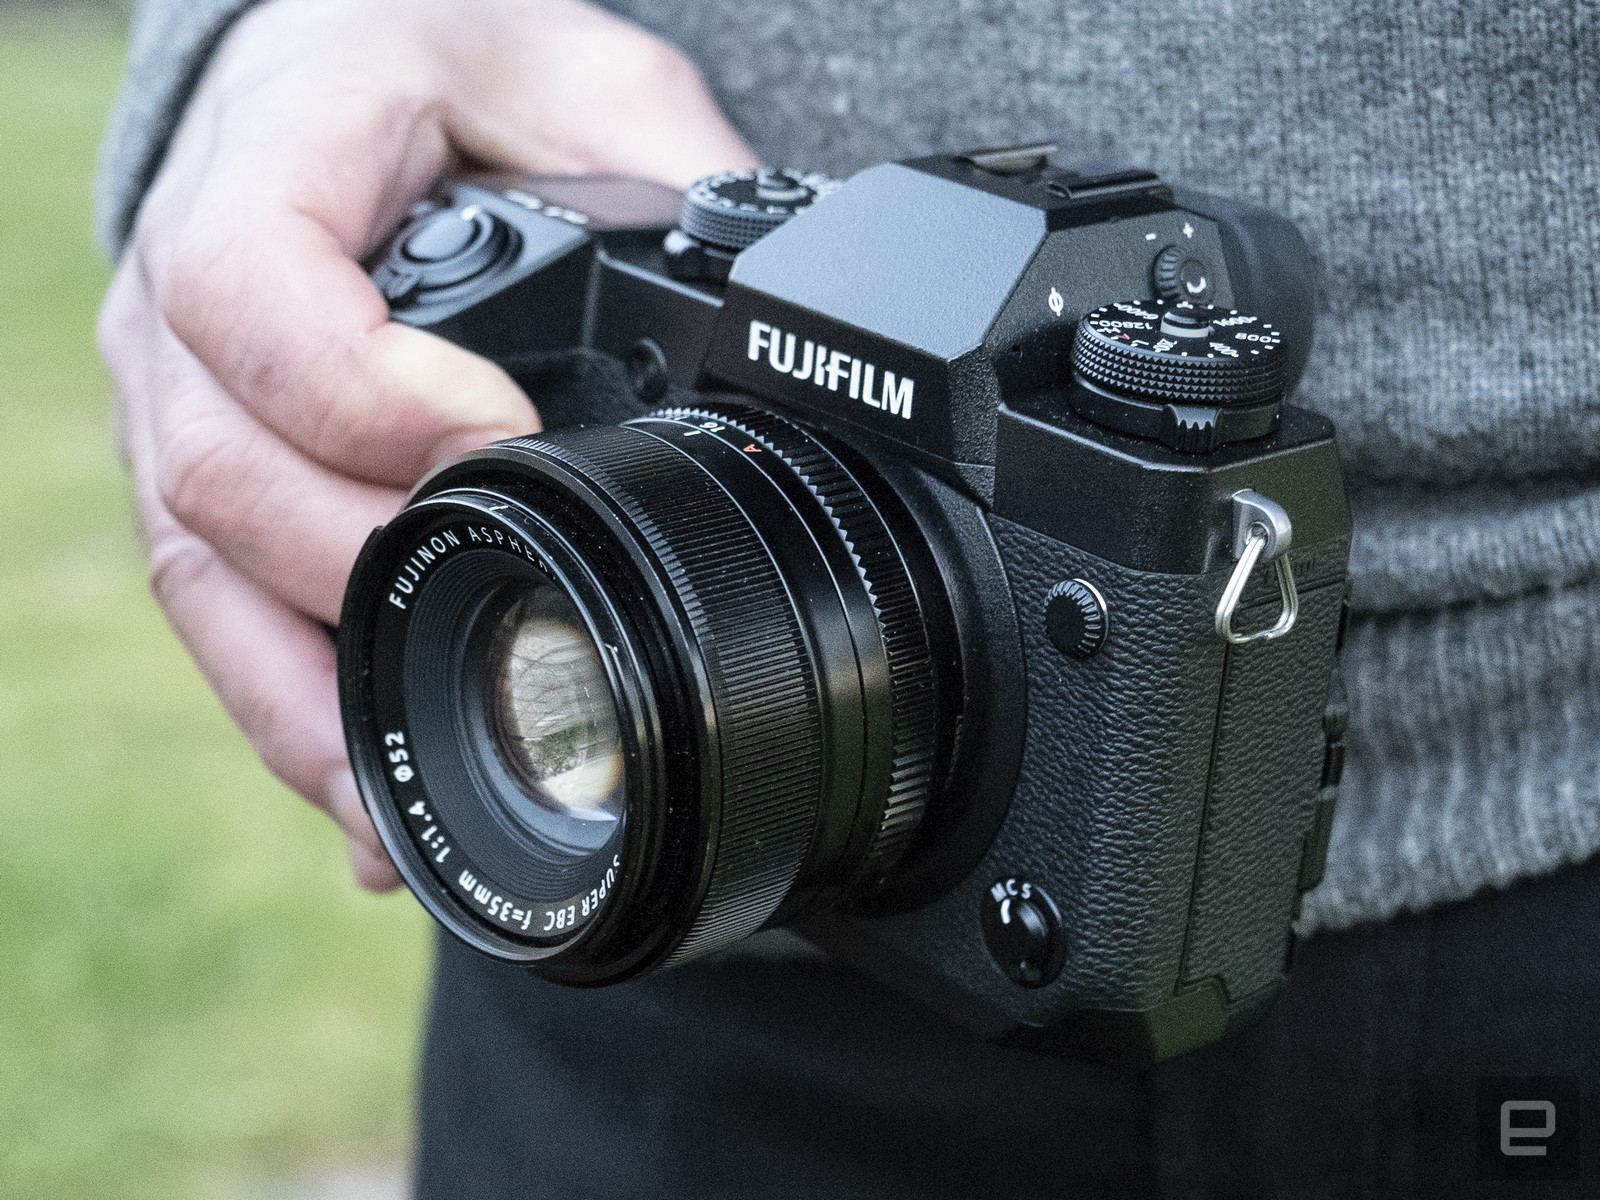 Fujifilm X-H1 review: Beautiful photos, but lacking X-series allure